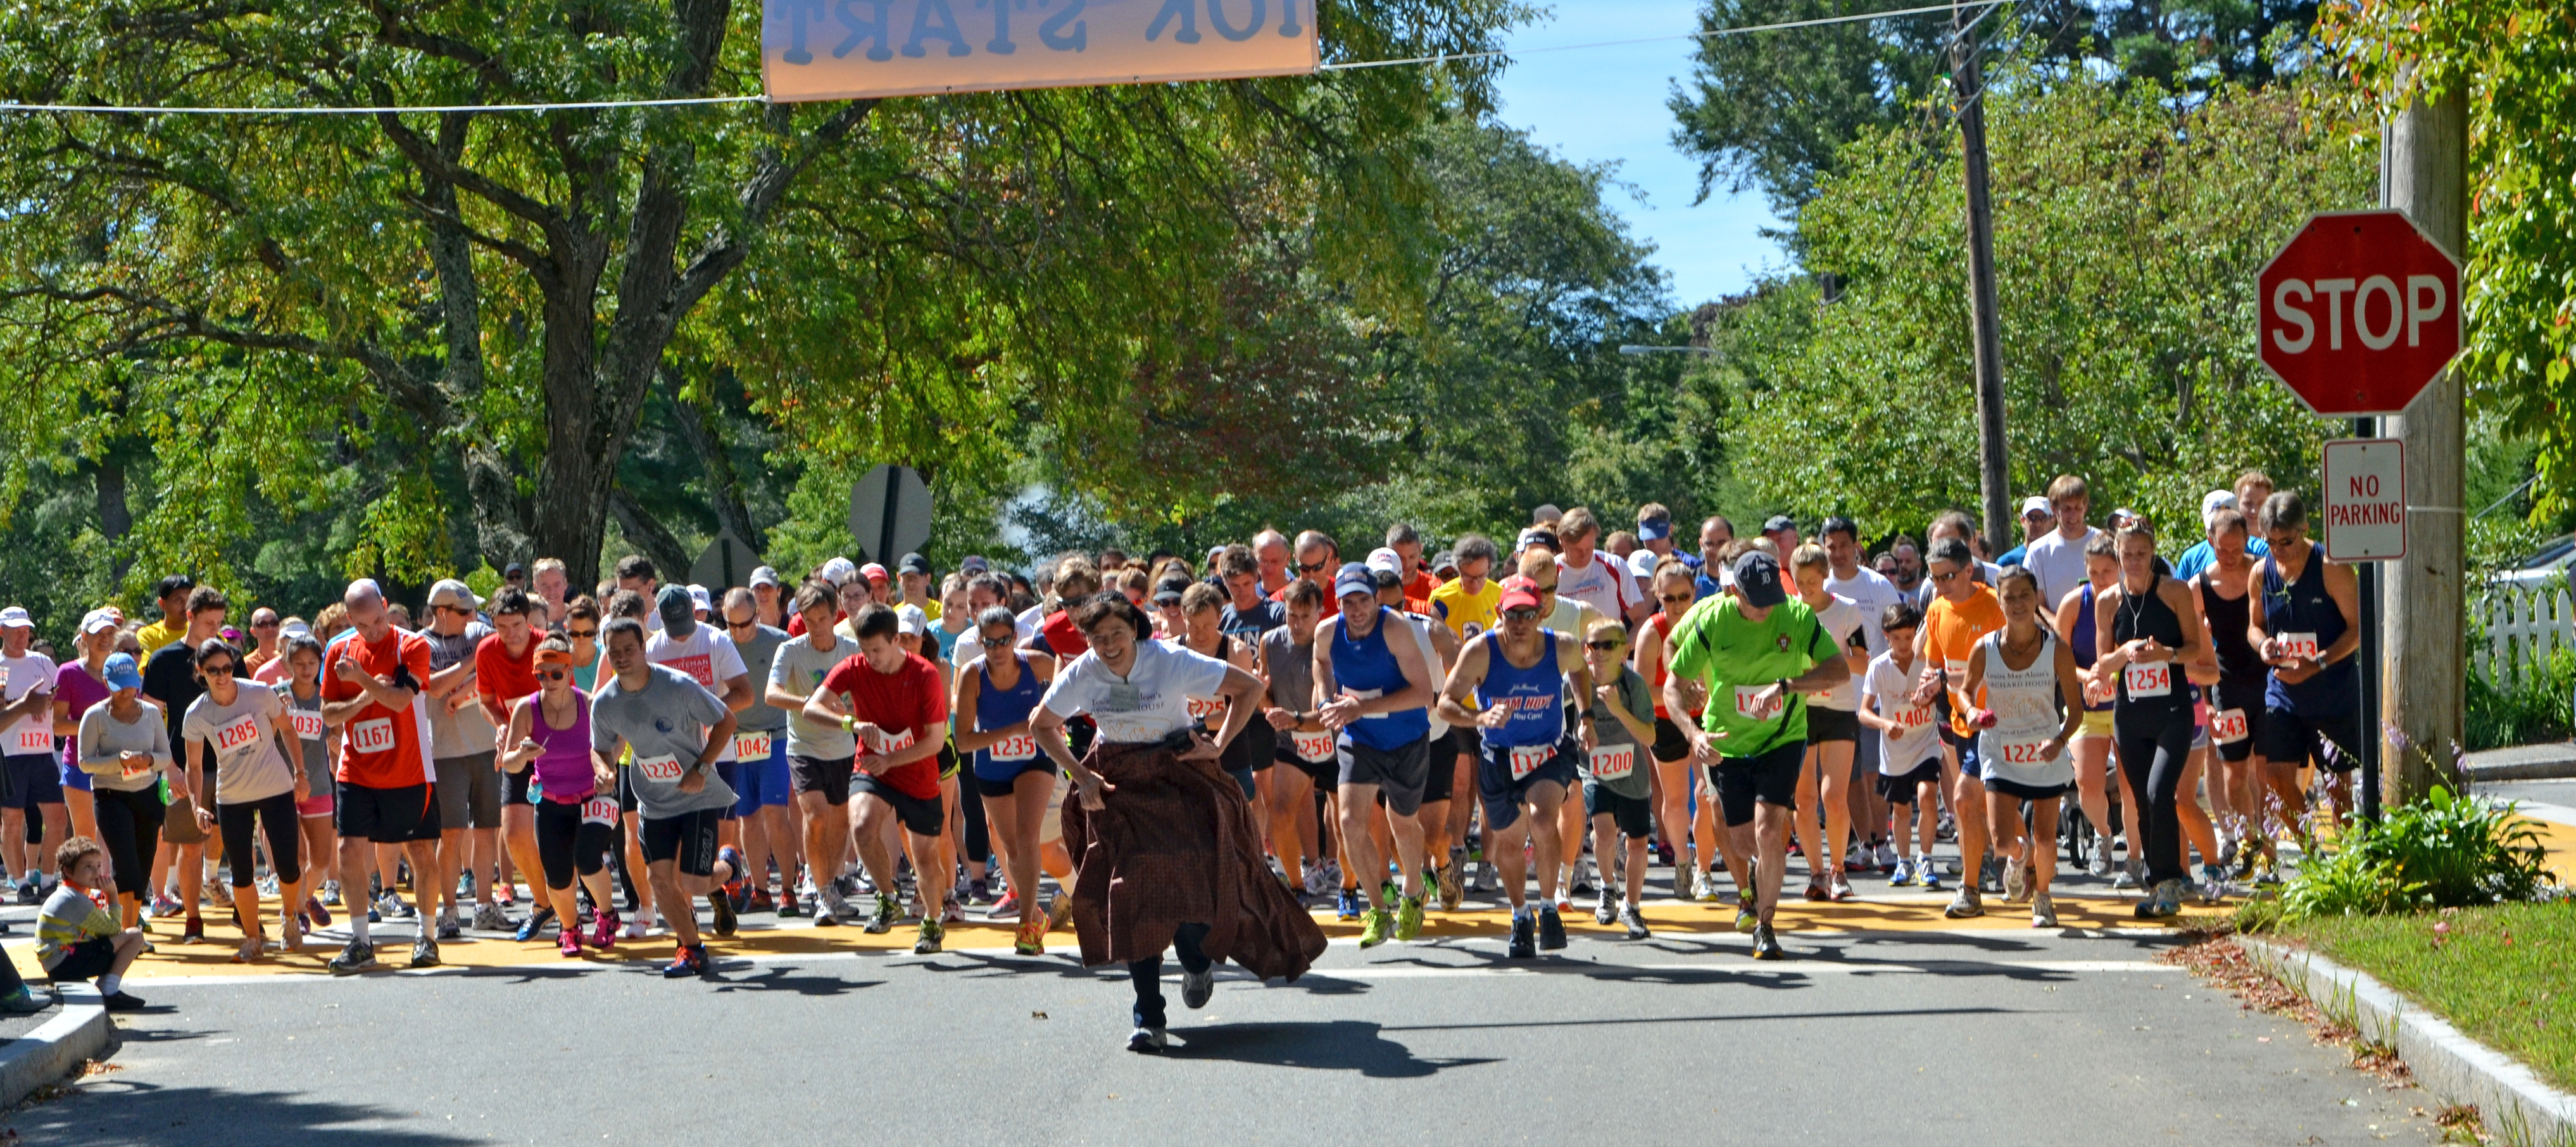 14th Annual Benefit 5K / 10K for Louisa May Alcott's Orchard